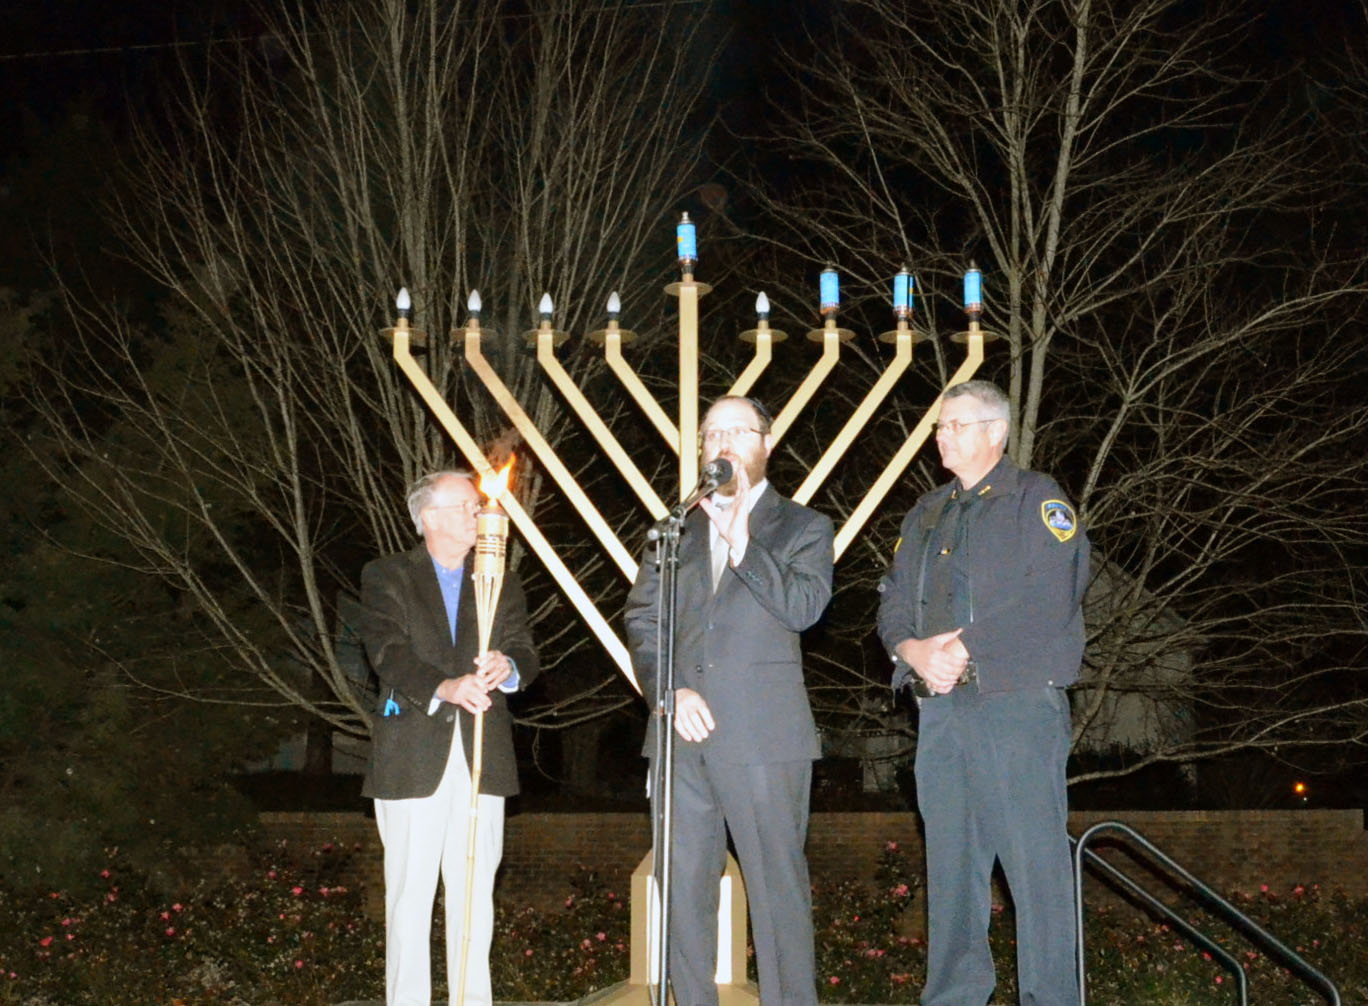 4th Annual Menorah Lighting Ceremony 2